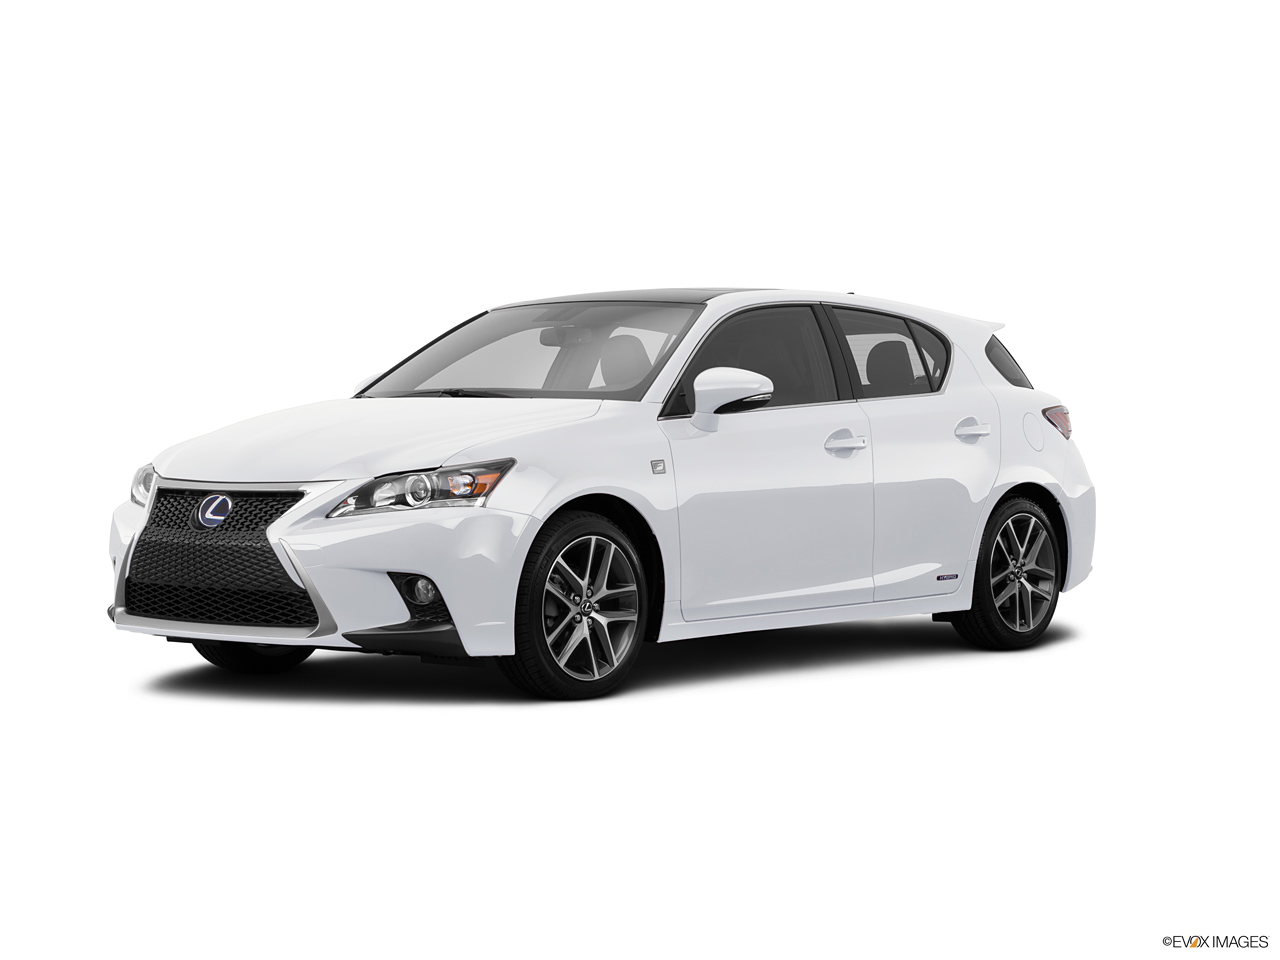 hight resolution of lexus service by top rated mechanics at the convenience of your home or office